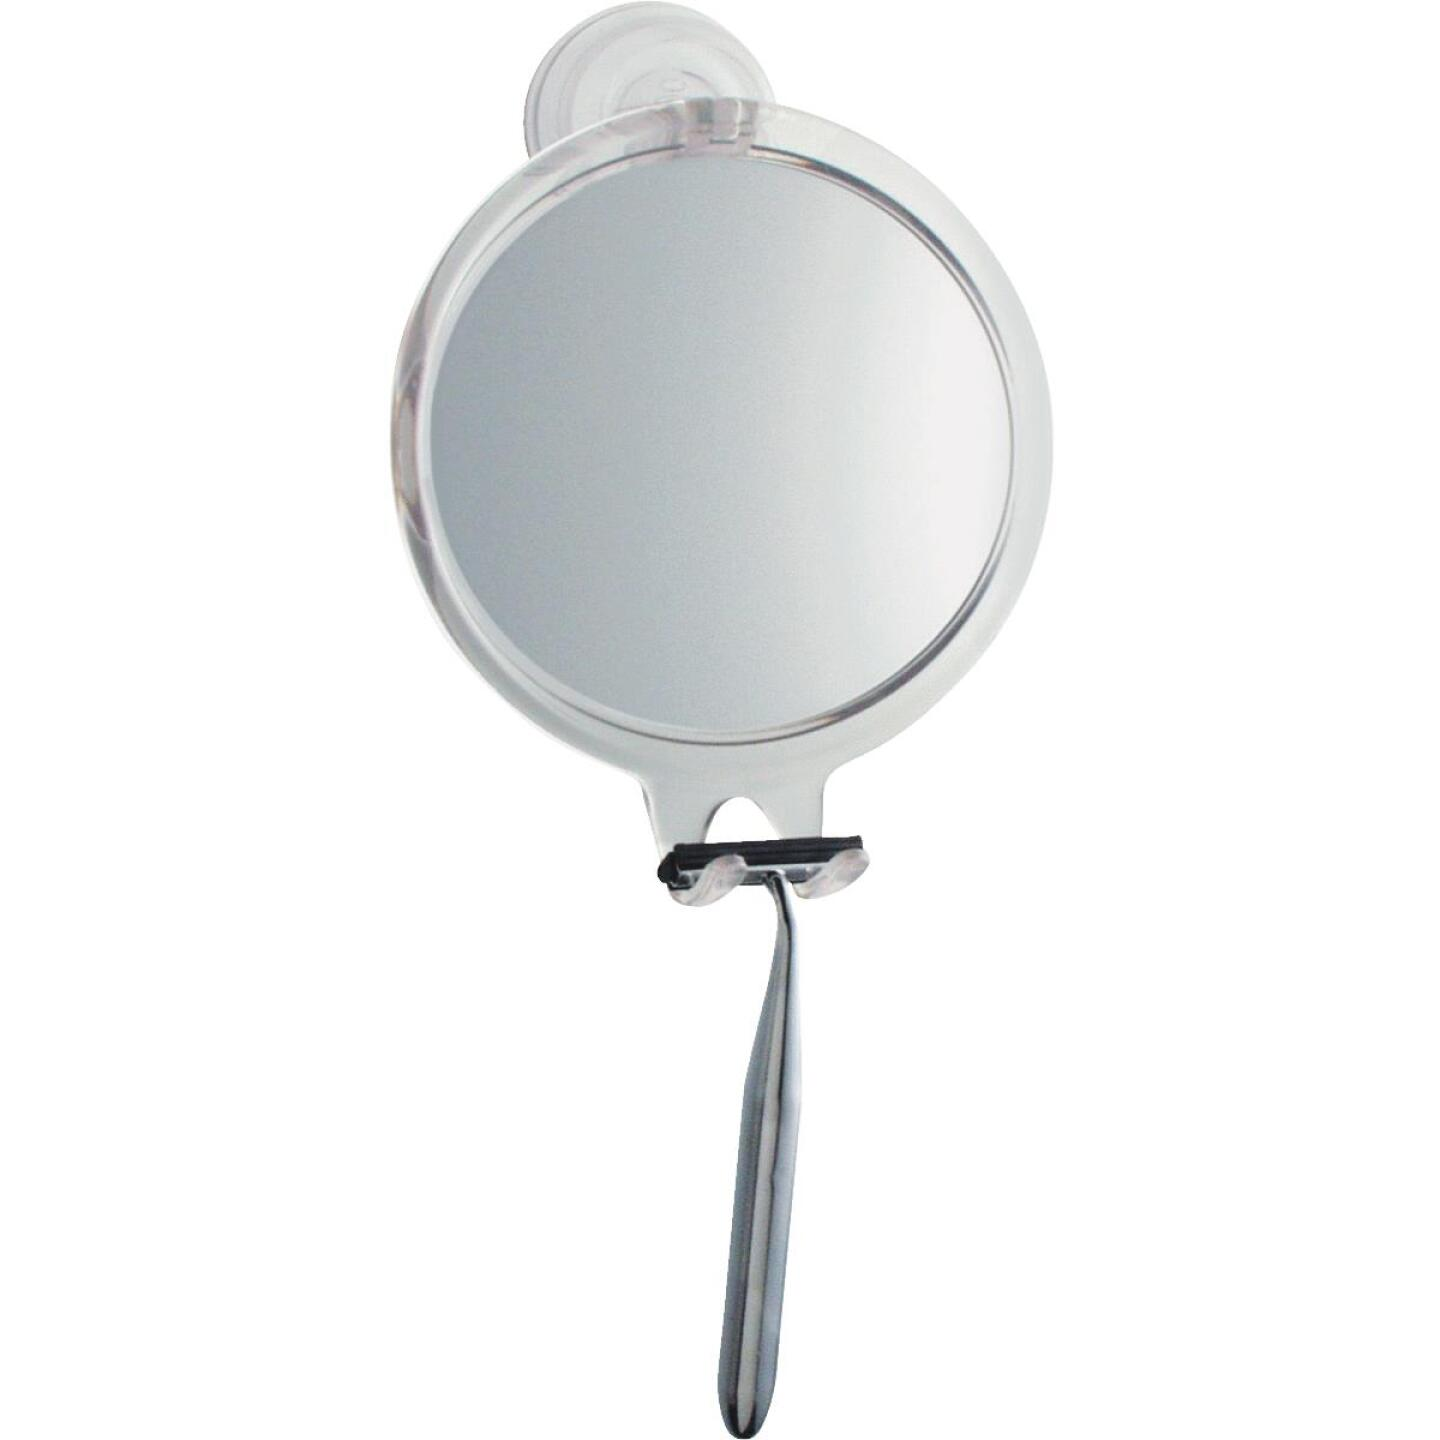 InterDesign Franklin Suction Fog-Free Mirror Image 1